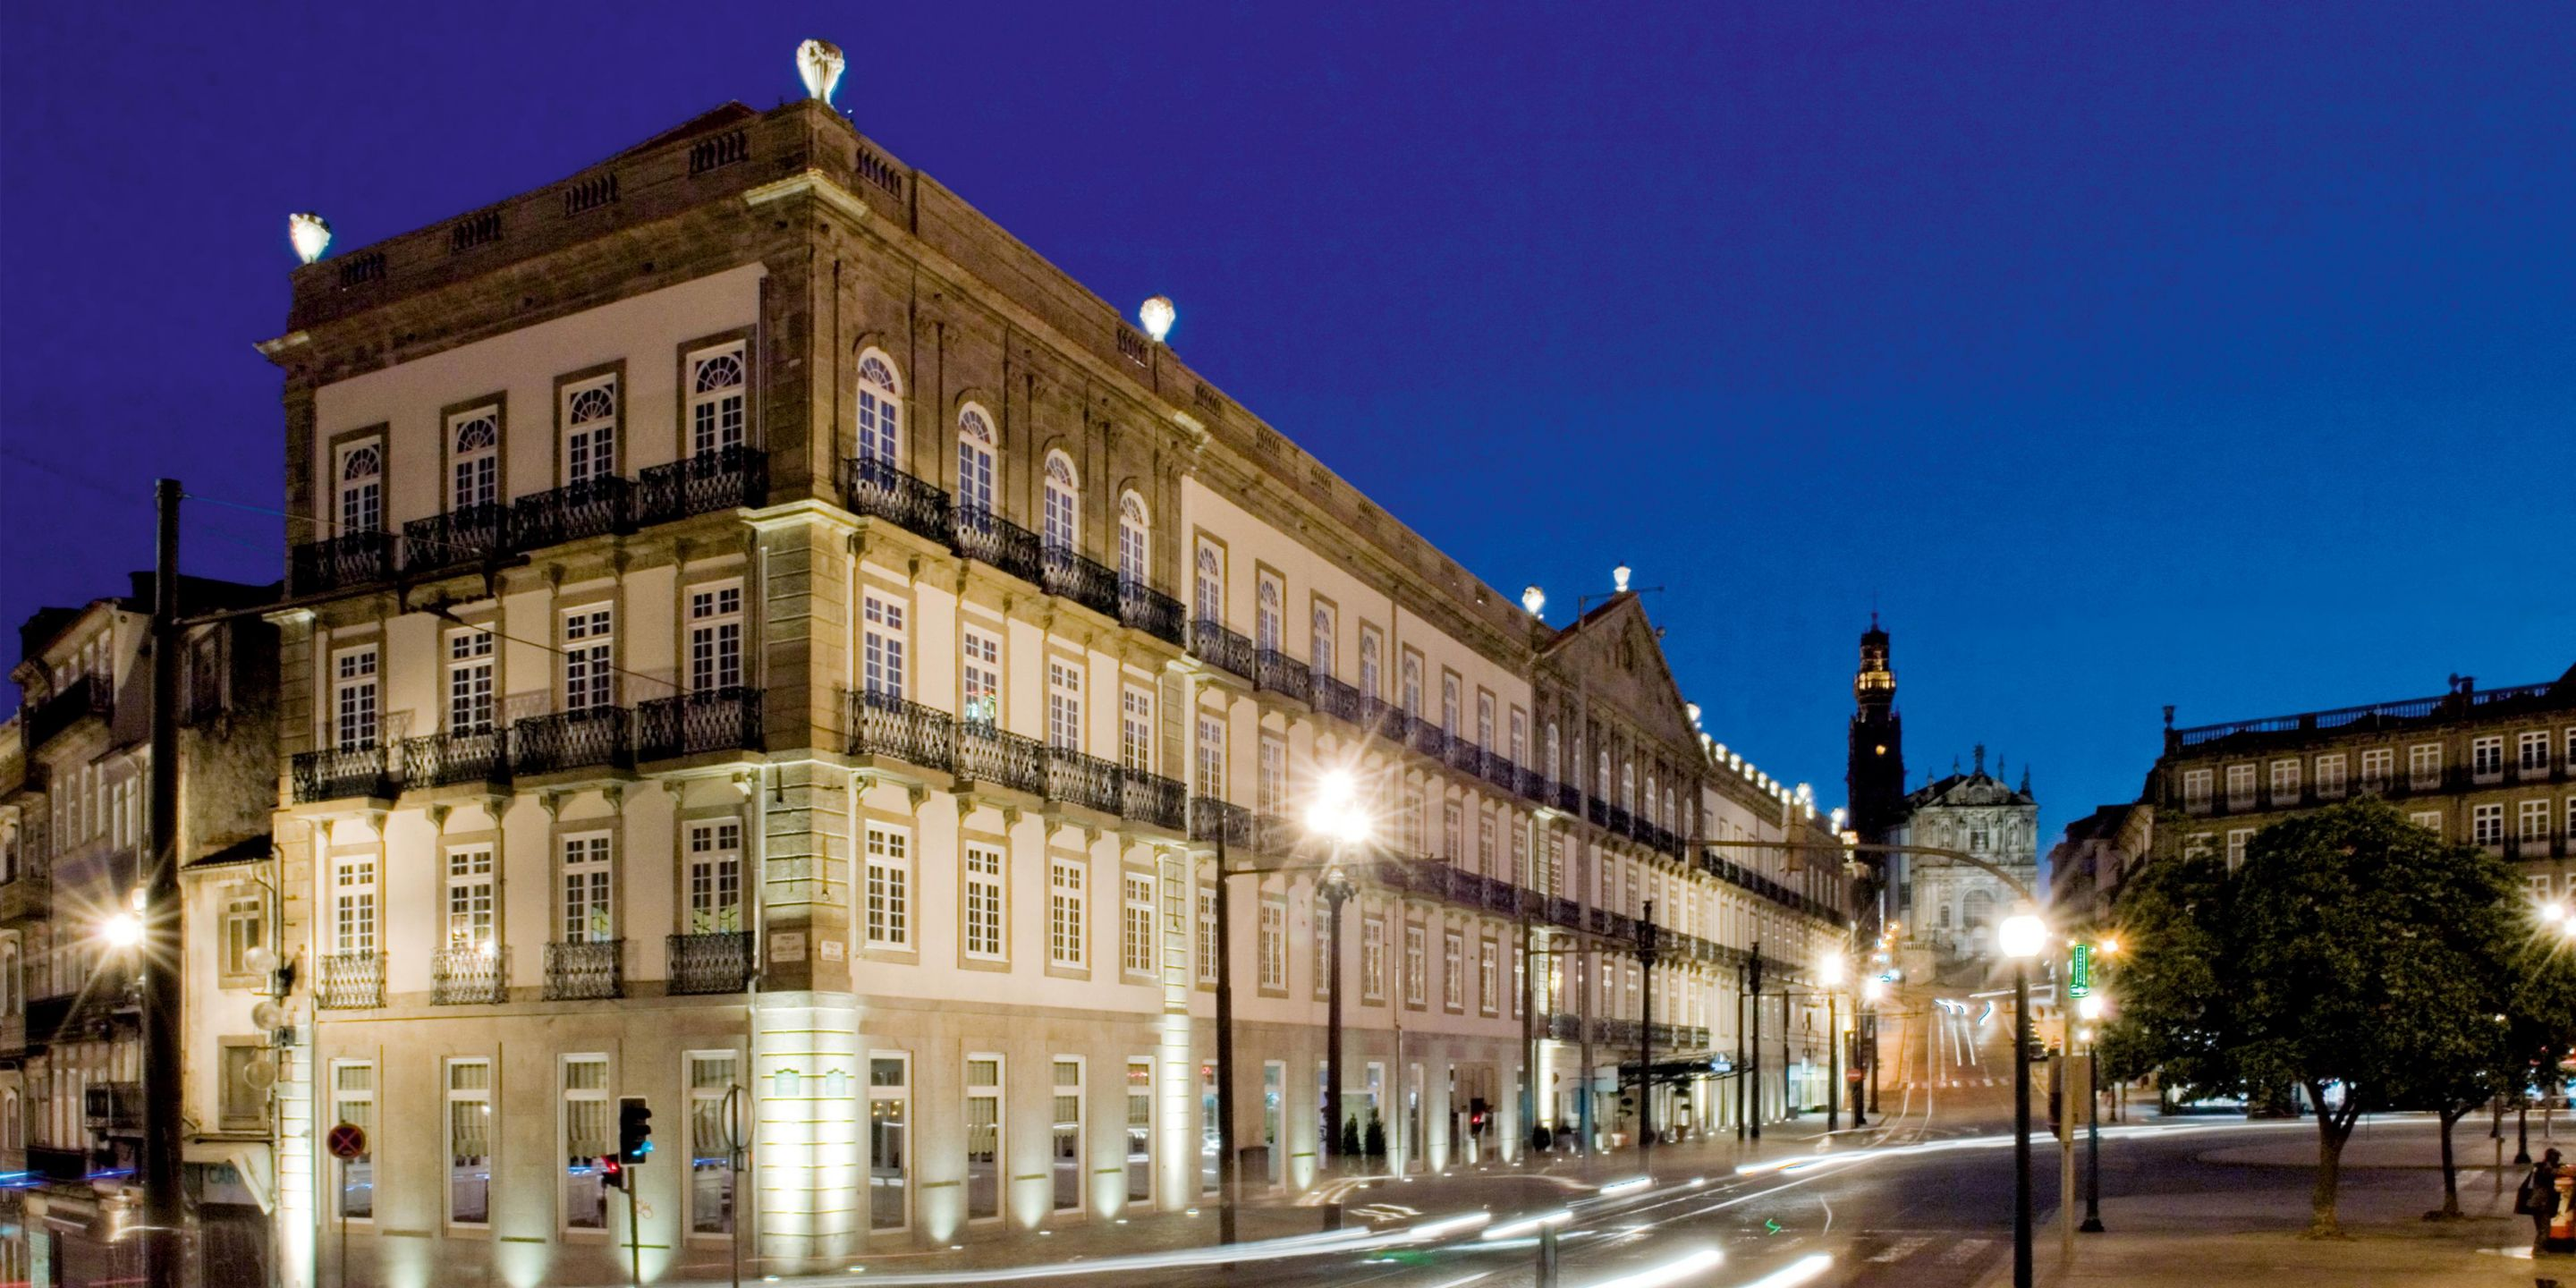 intercontinental-porto-4094439162-2x1